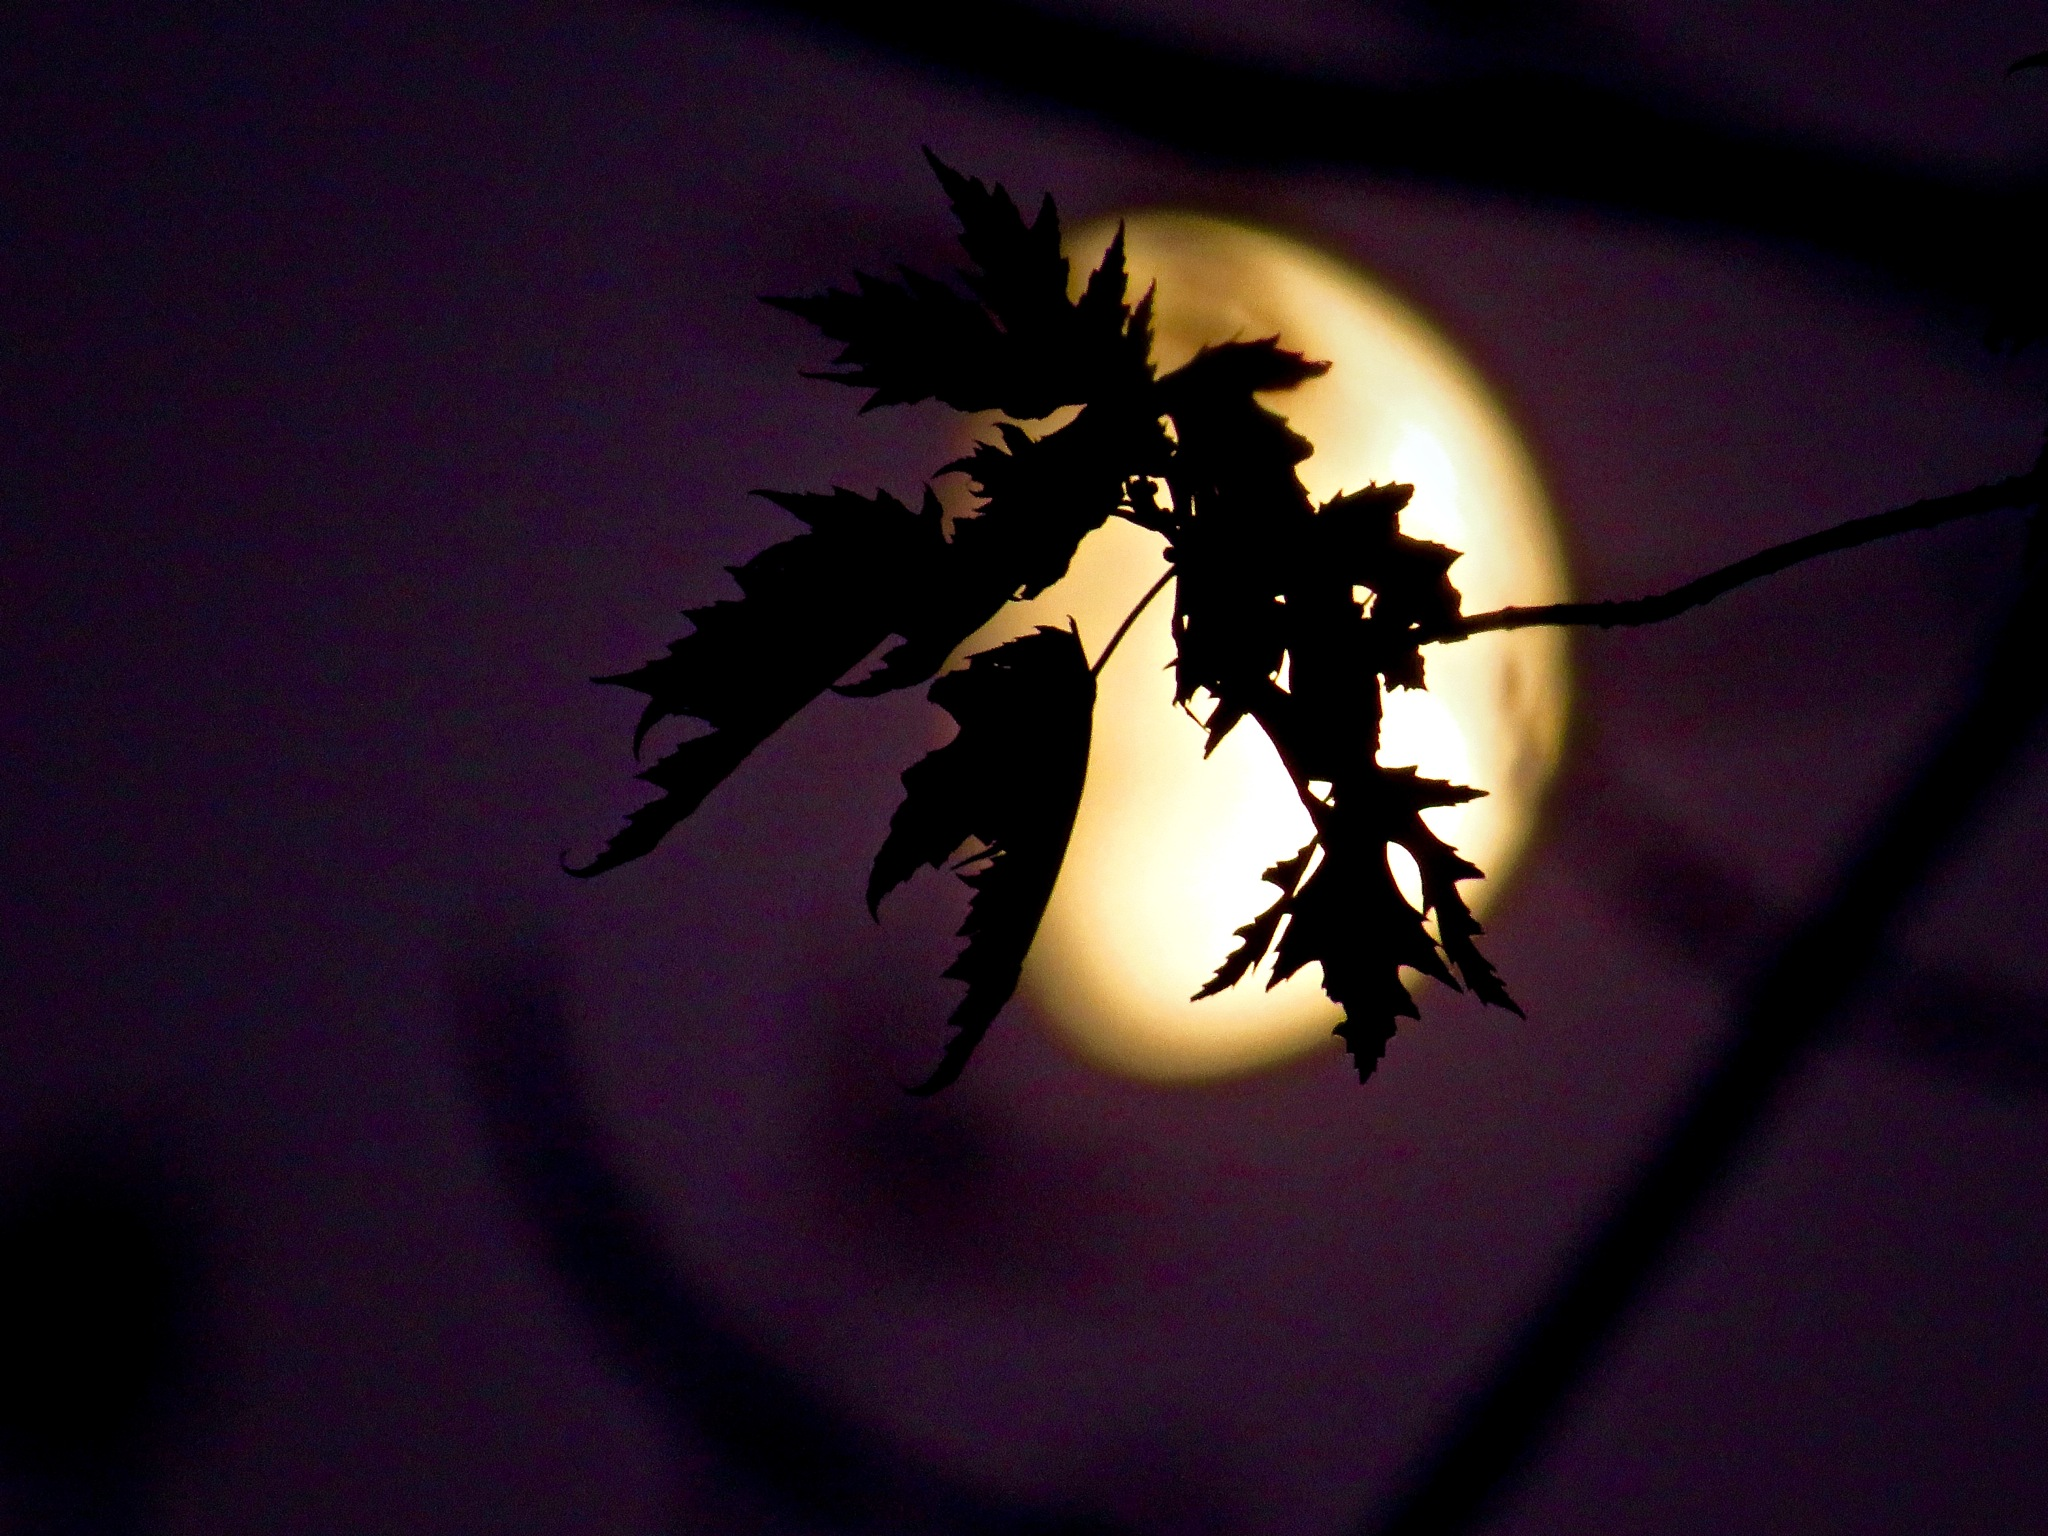 blowing softly in the moon lit breeze by David Devion